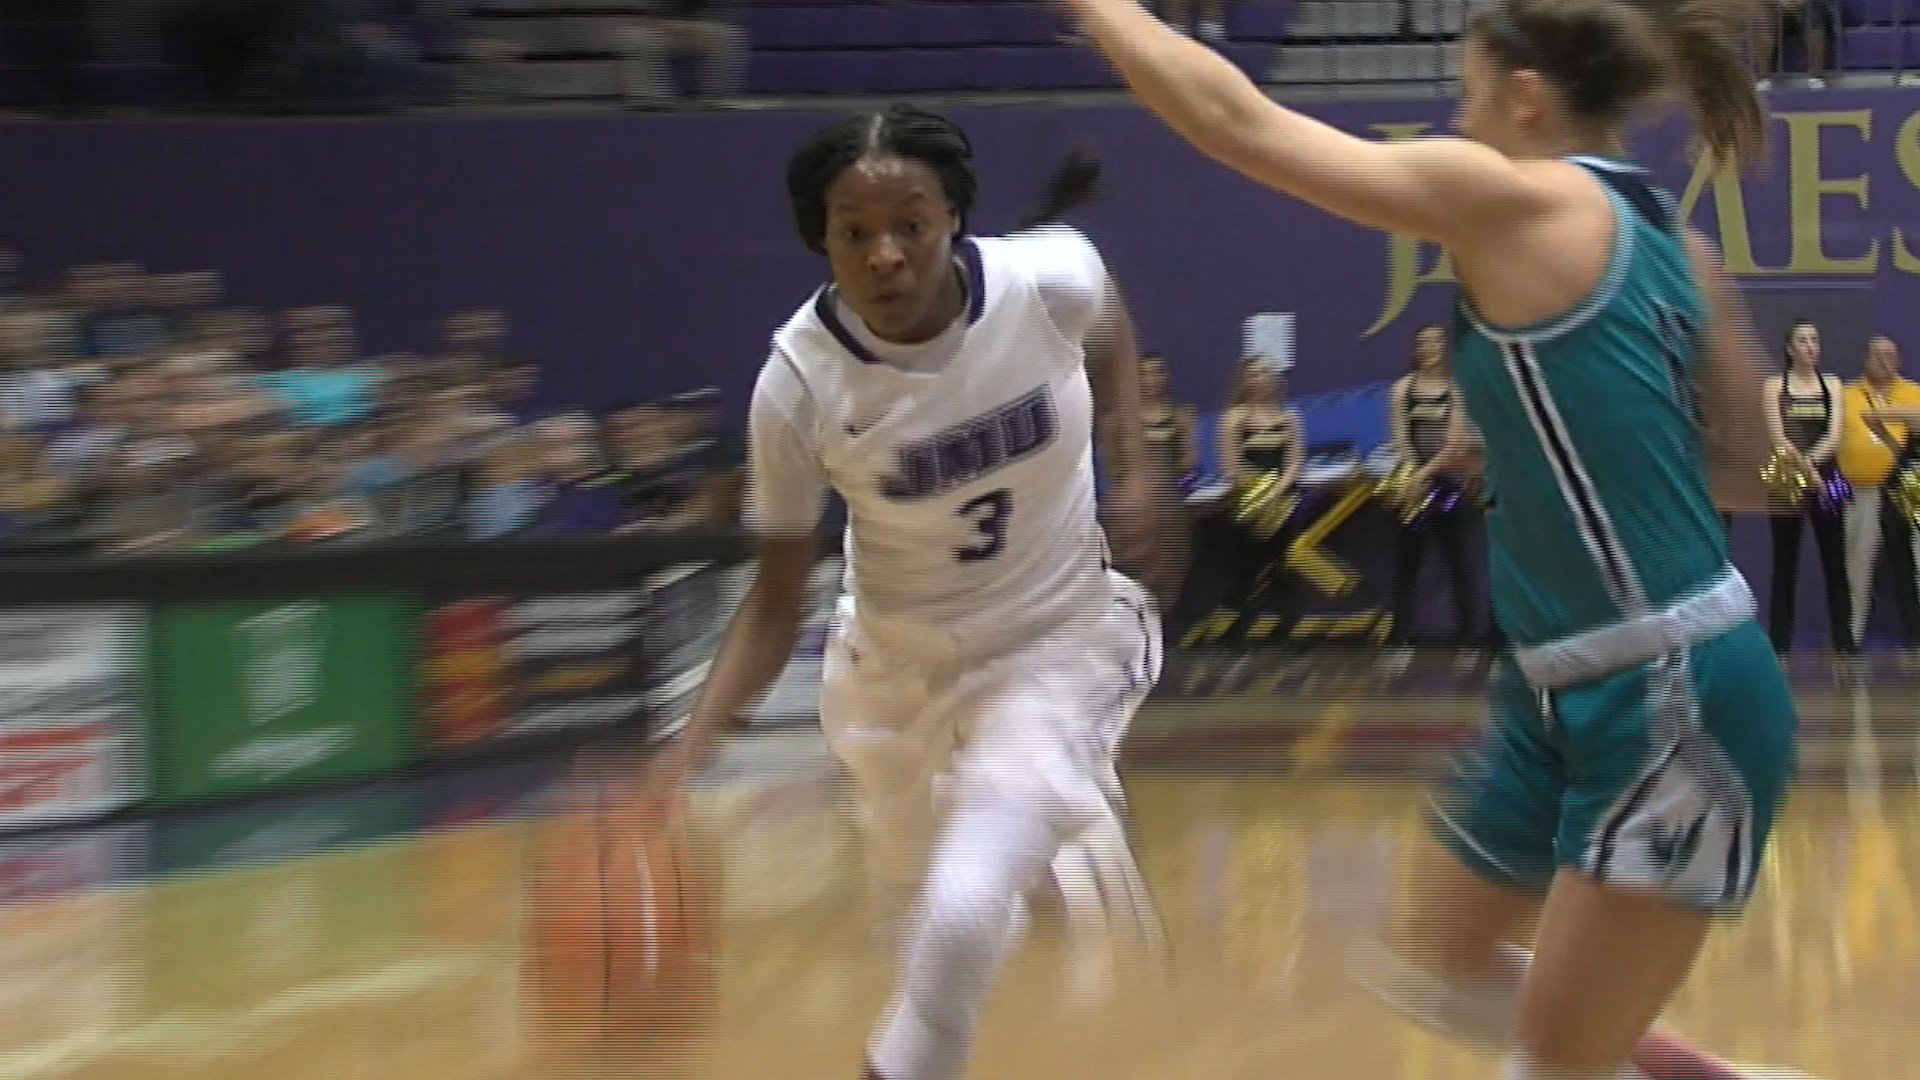 Kamiah Smalls led the Dukes with 17 points